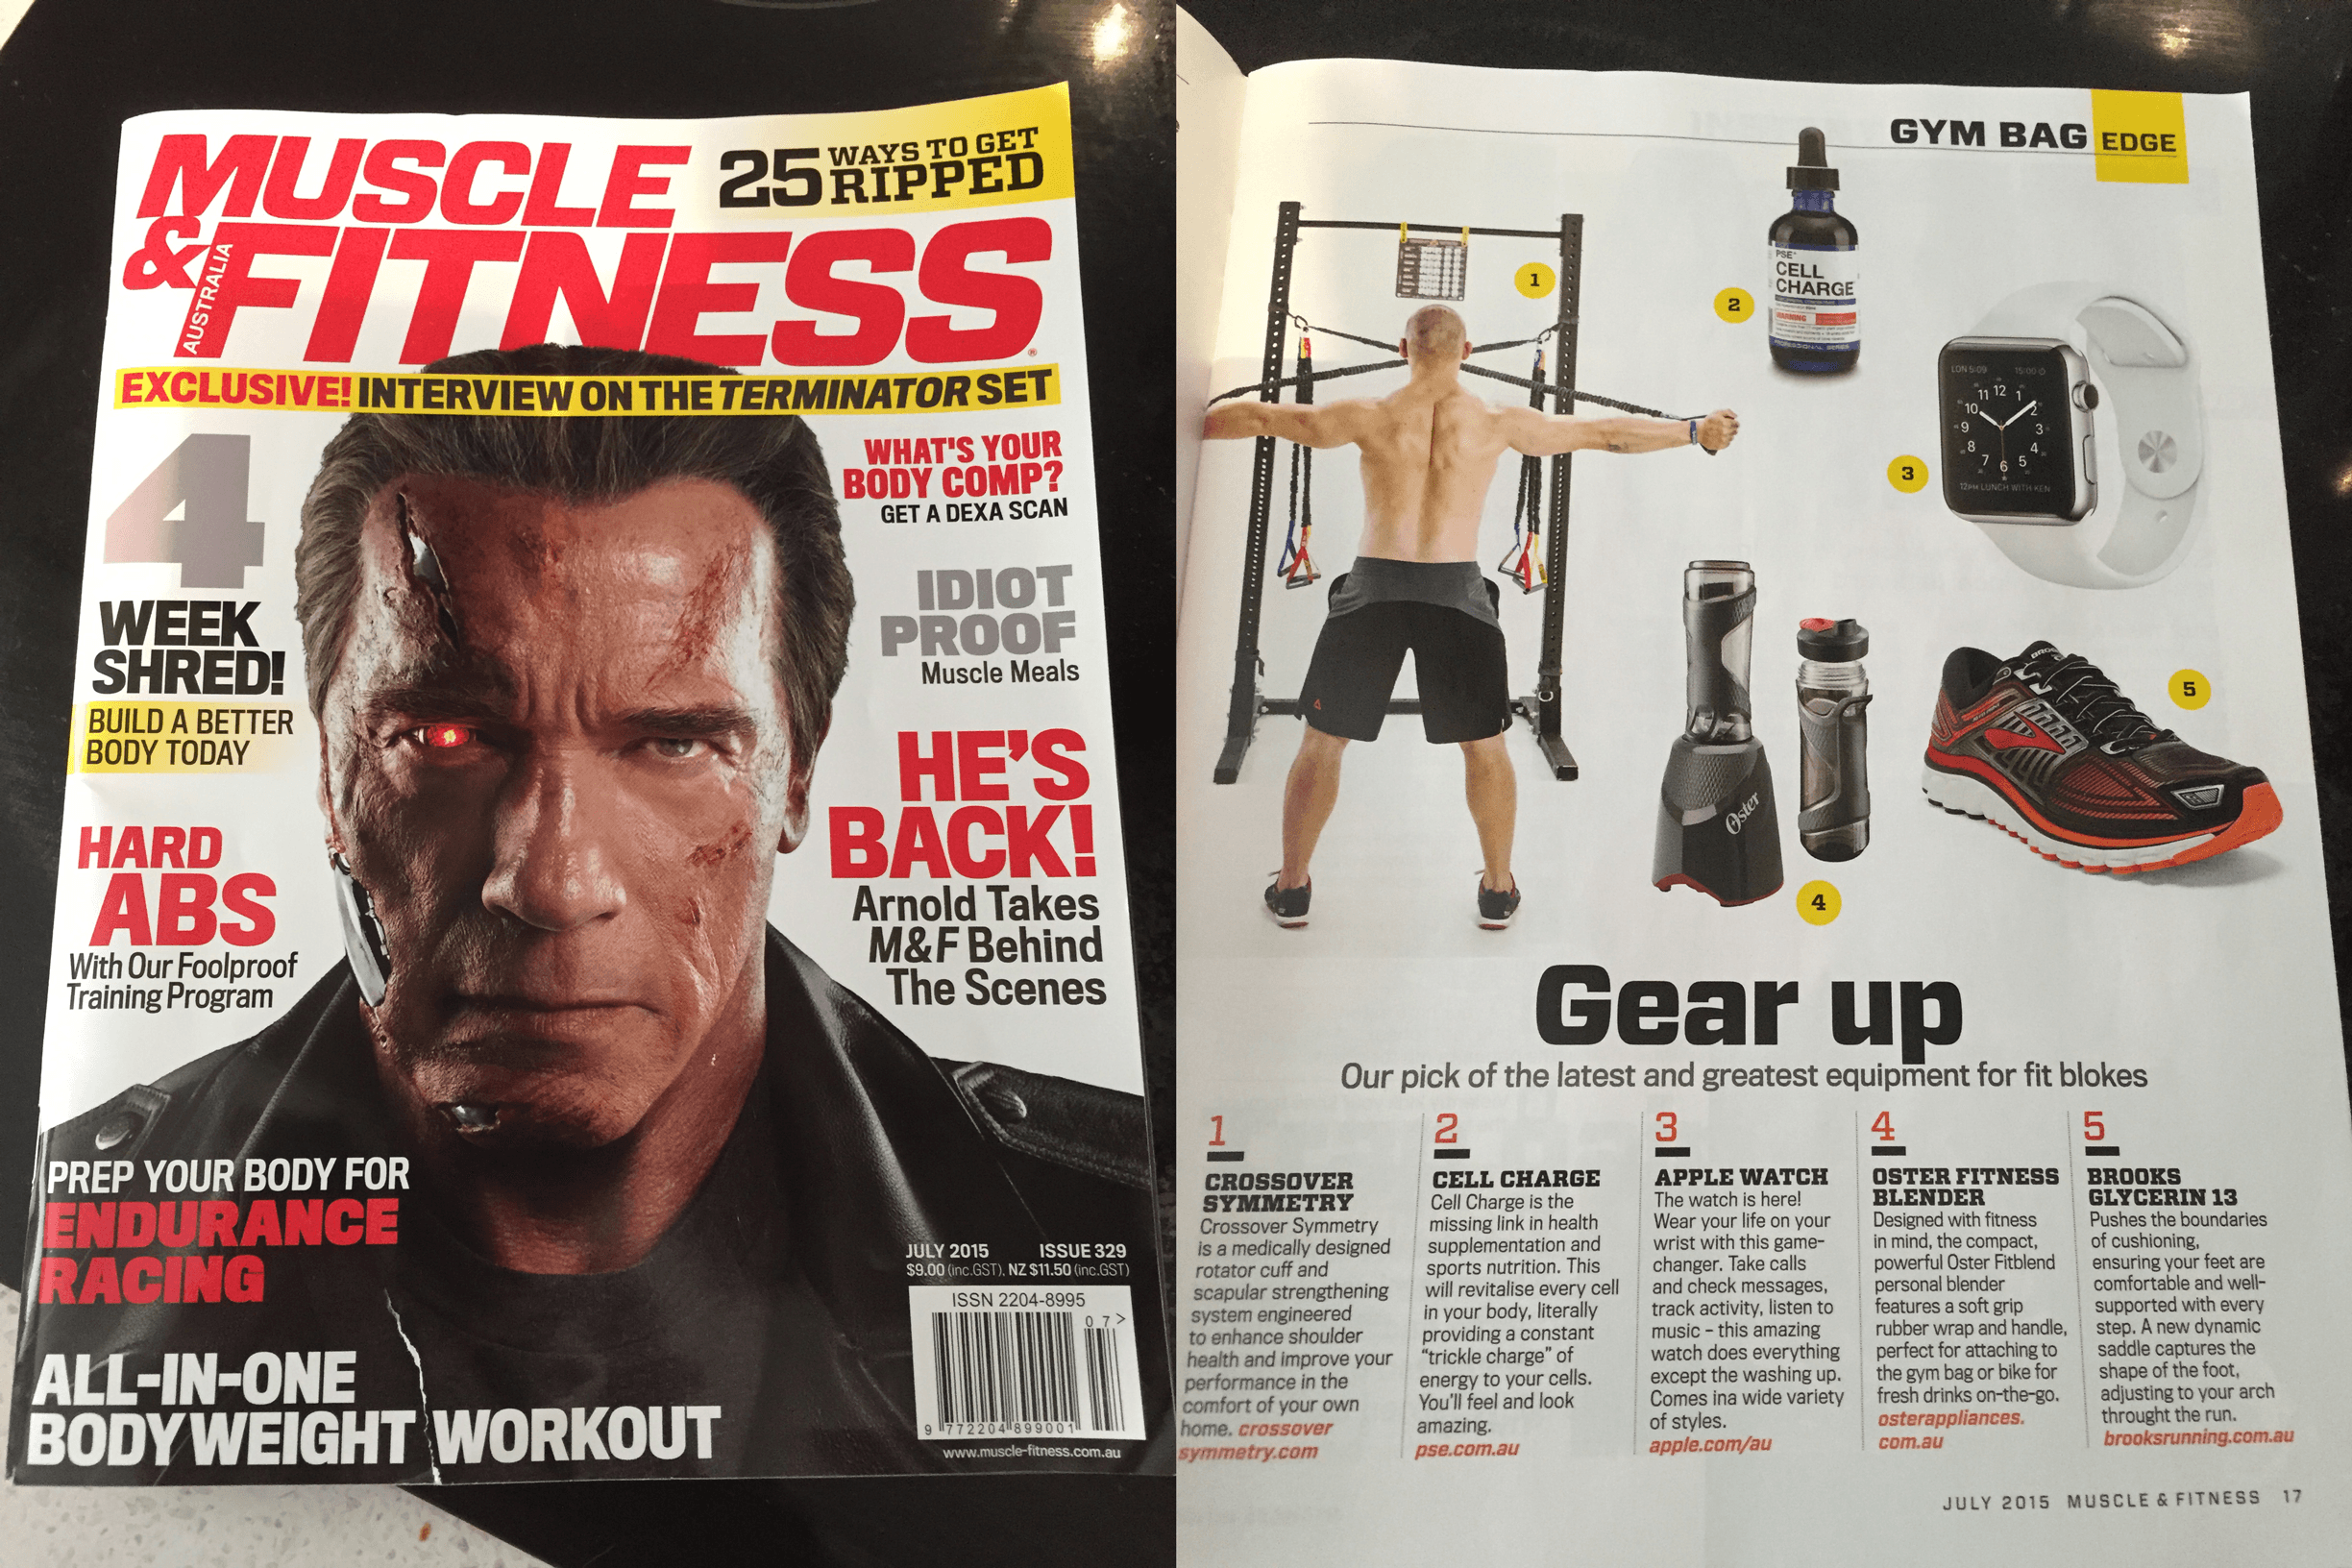 As seen in Muscle & Fitness magazine